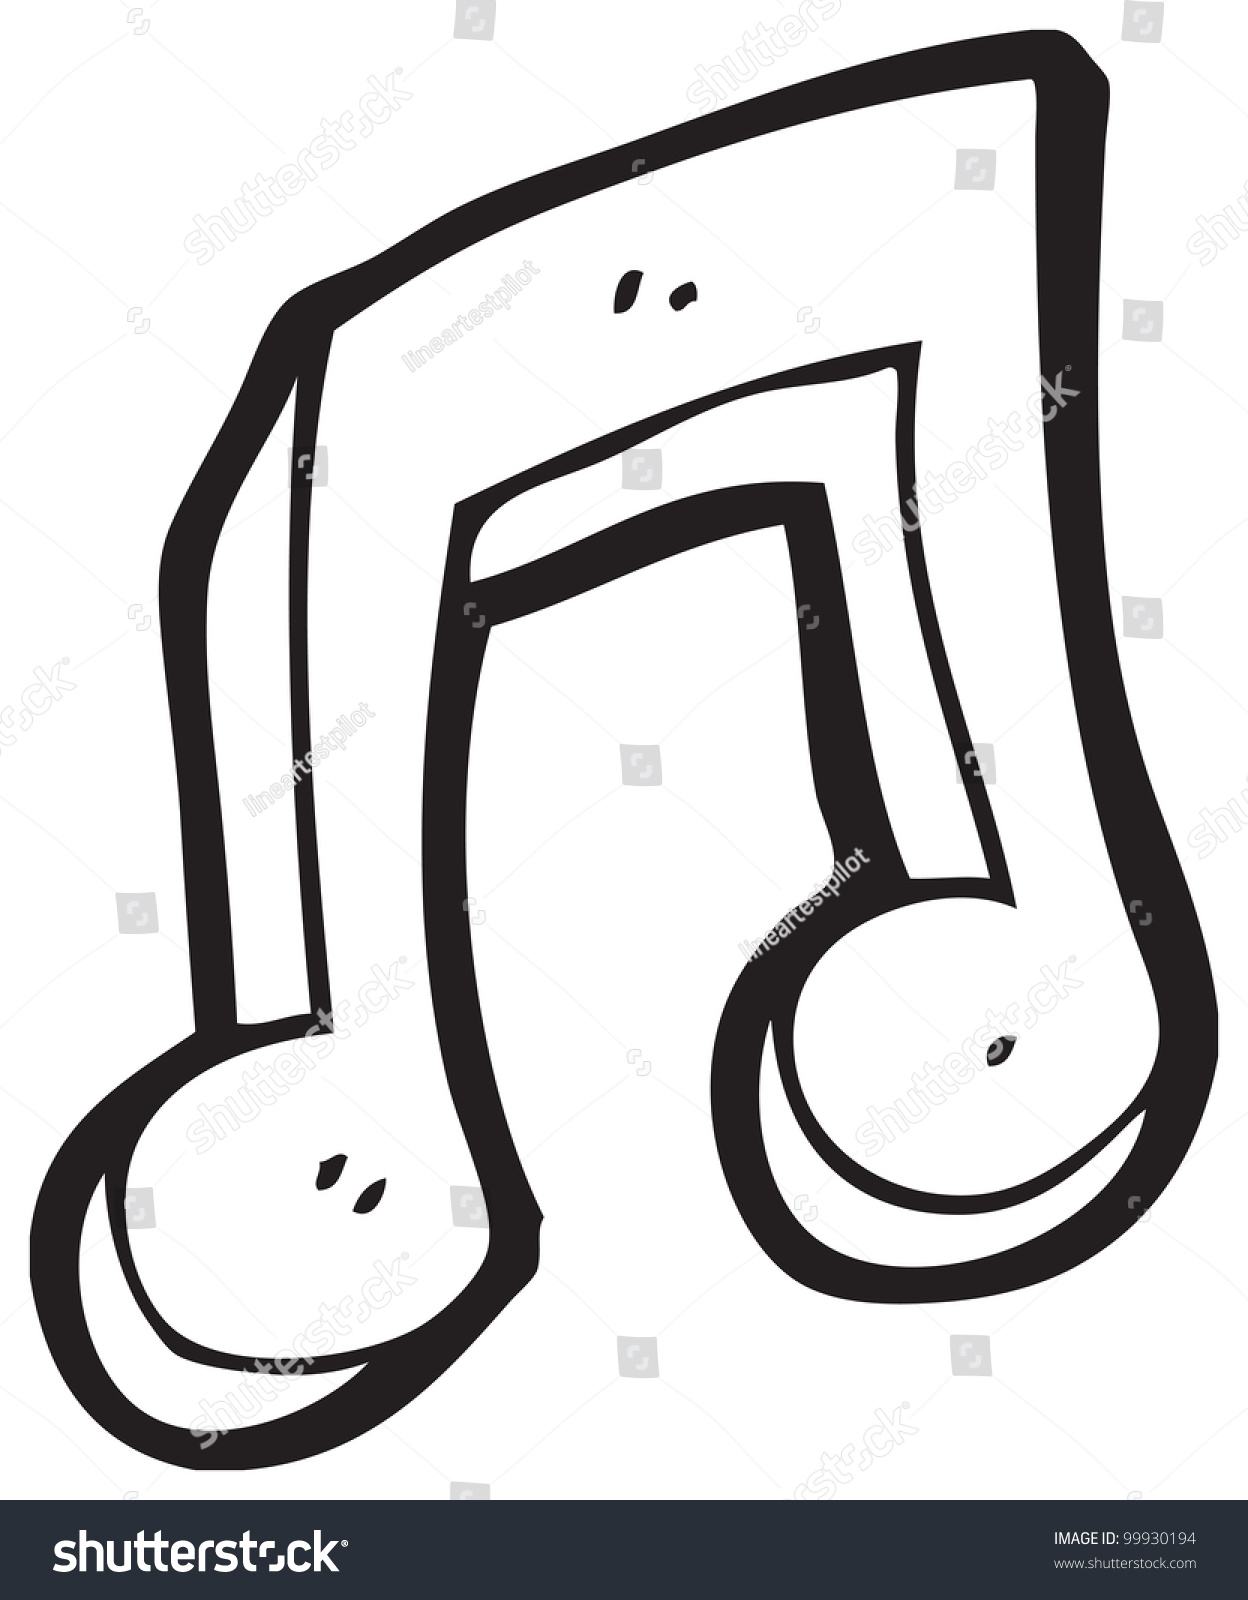 Cartoon Music Note Stock Illustration 99930194 - Shutterstock